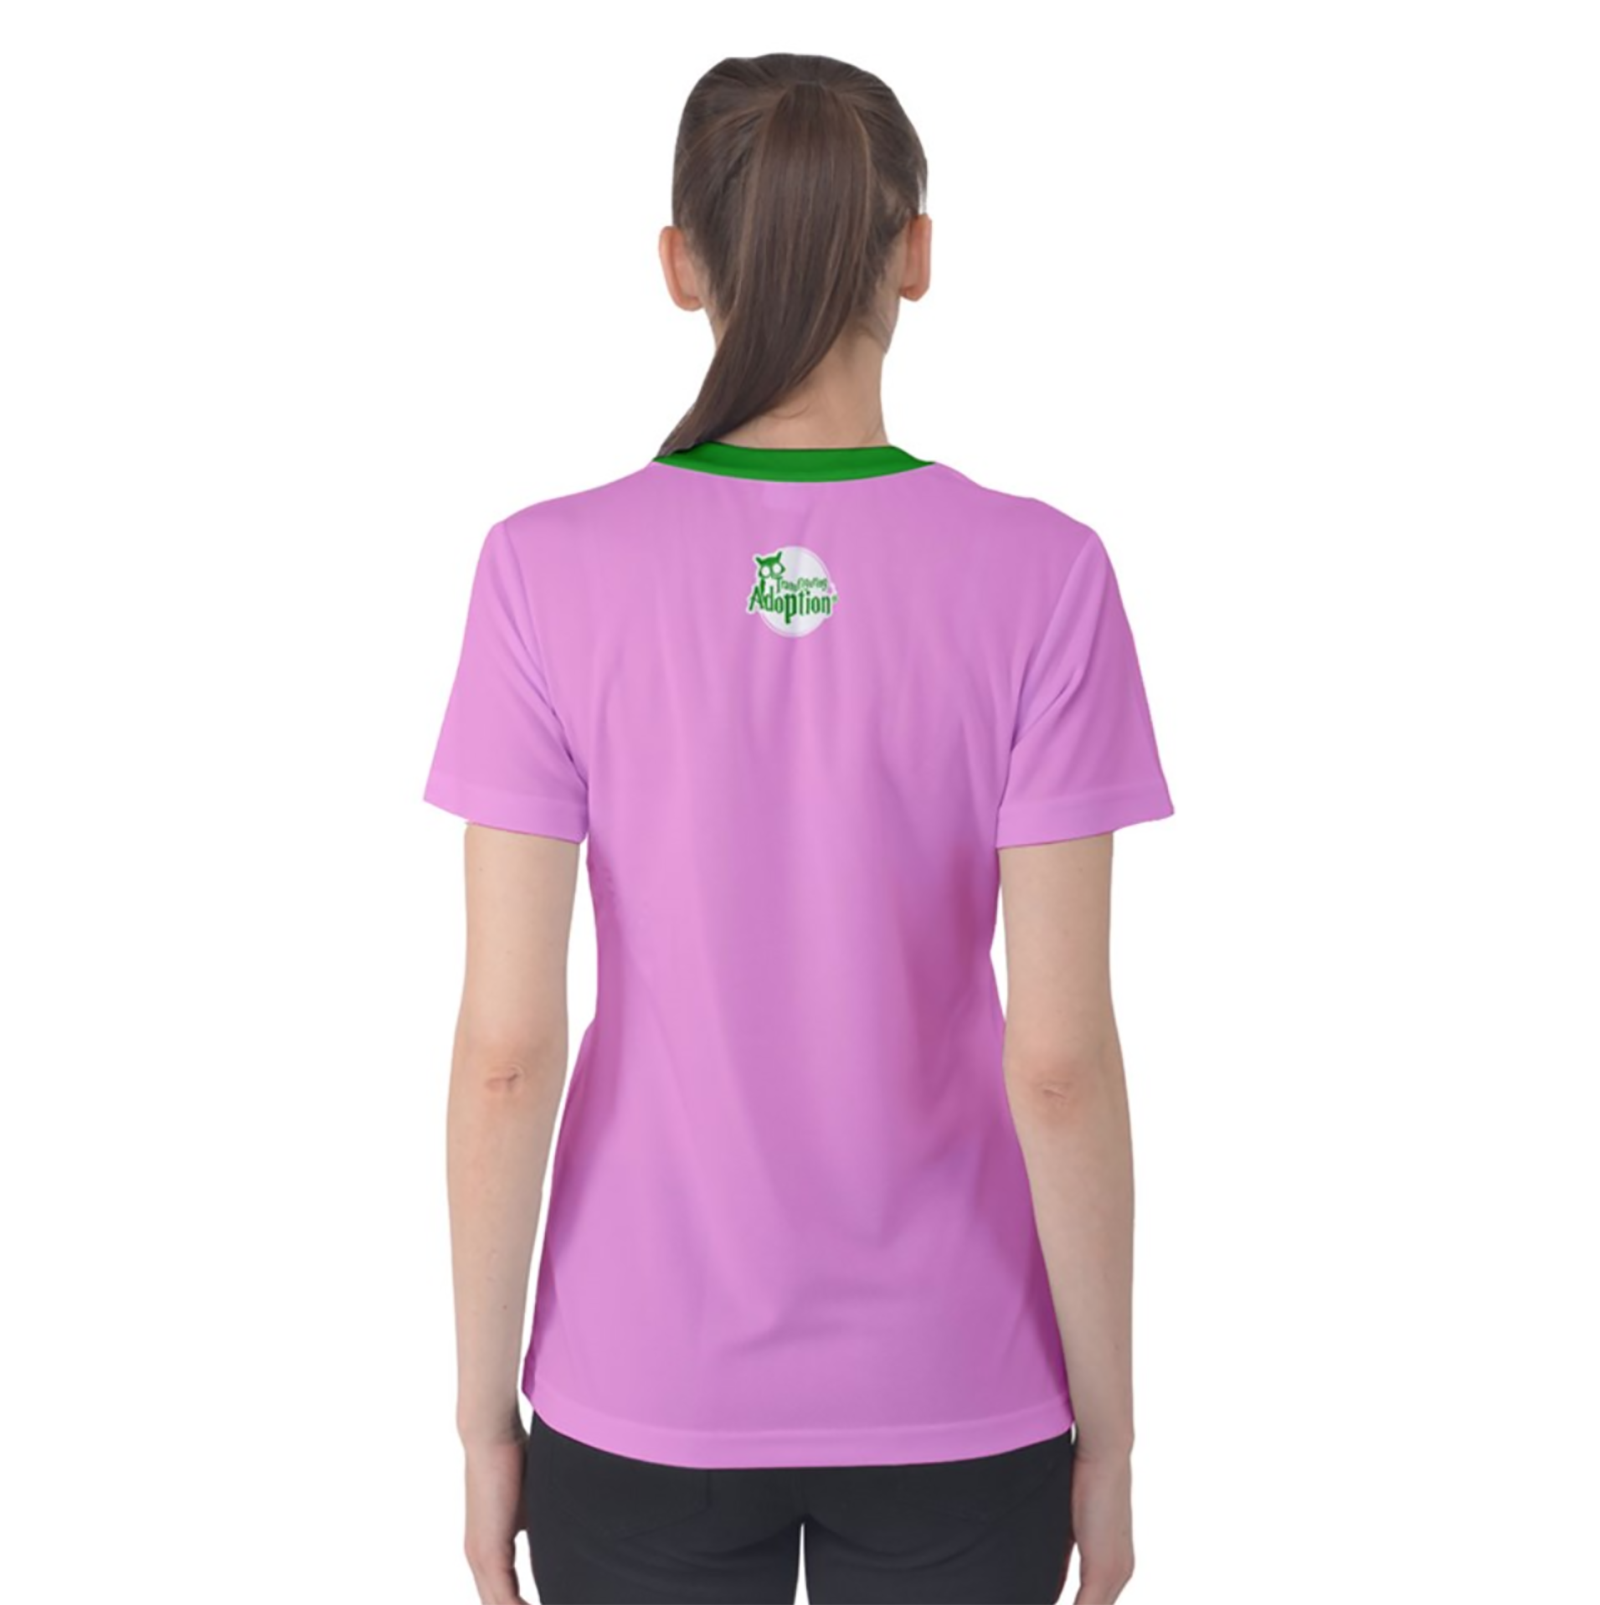 Candy Store Owl Women's Cotton Tee (Solid Background)